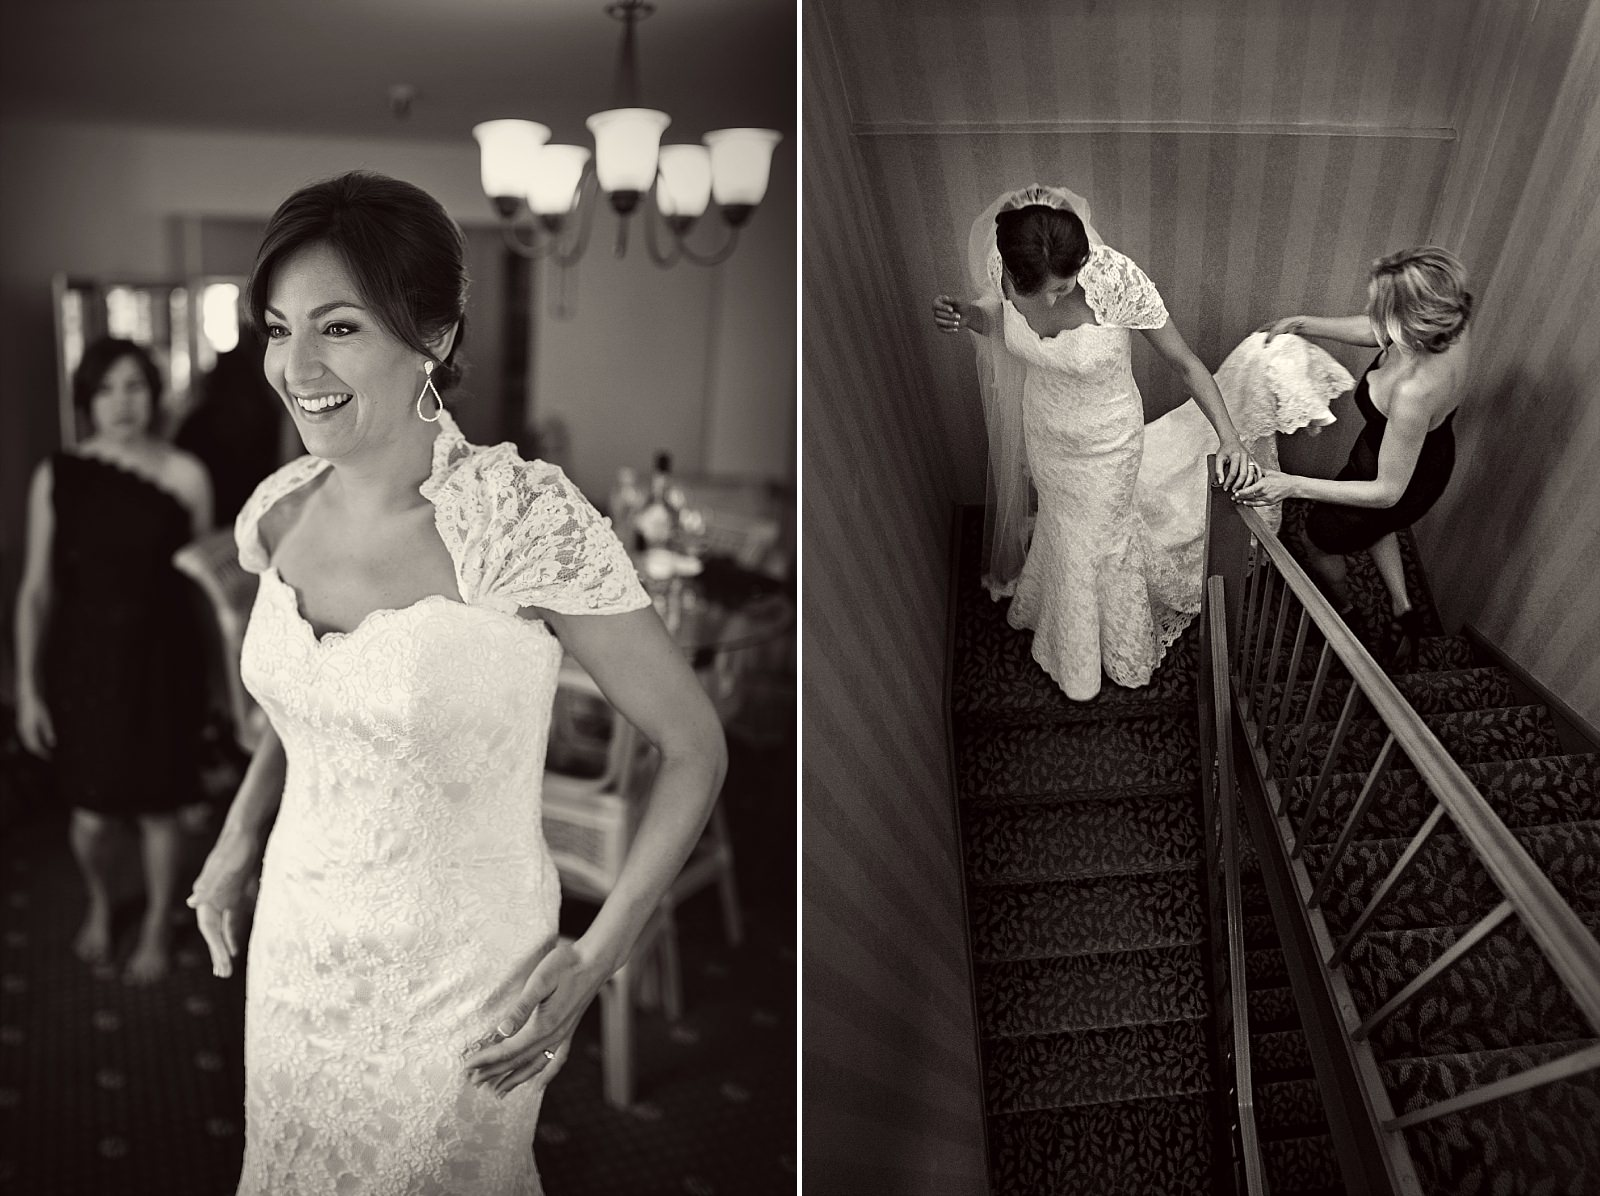 NY_Wedding_Photographer_KaJo_12.jpg